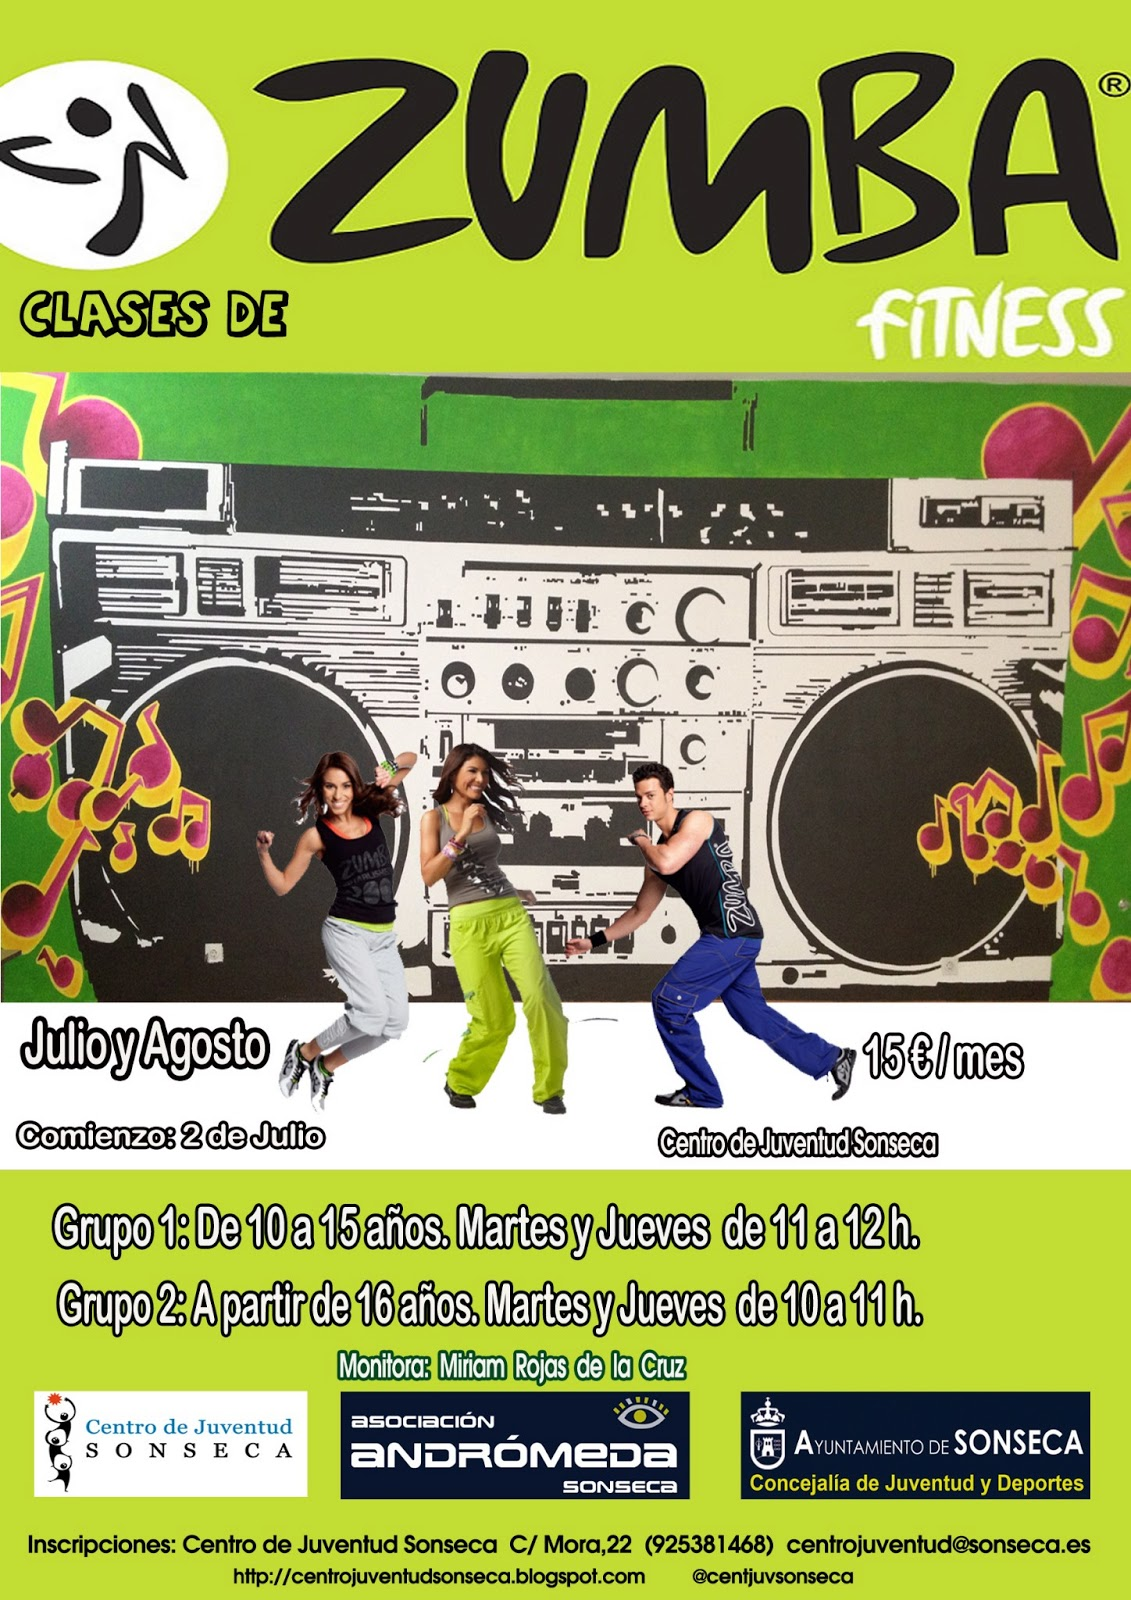 centro juventud sonseca clases de zumba fitness